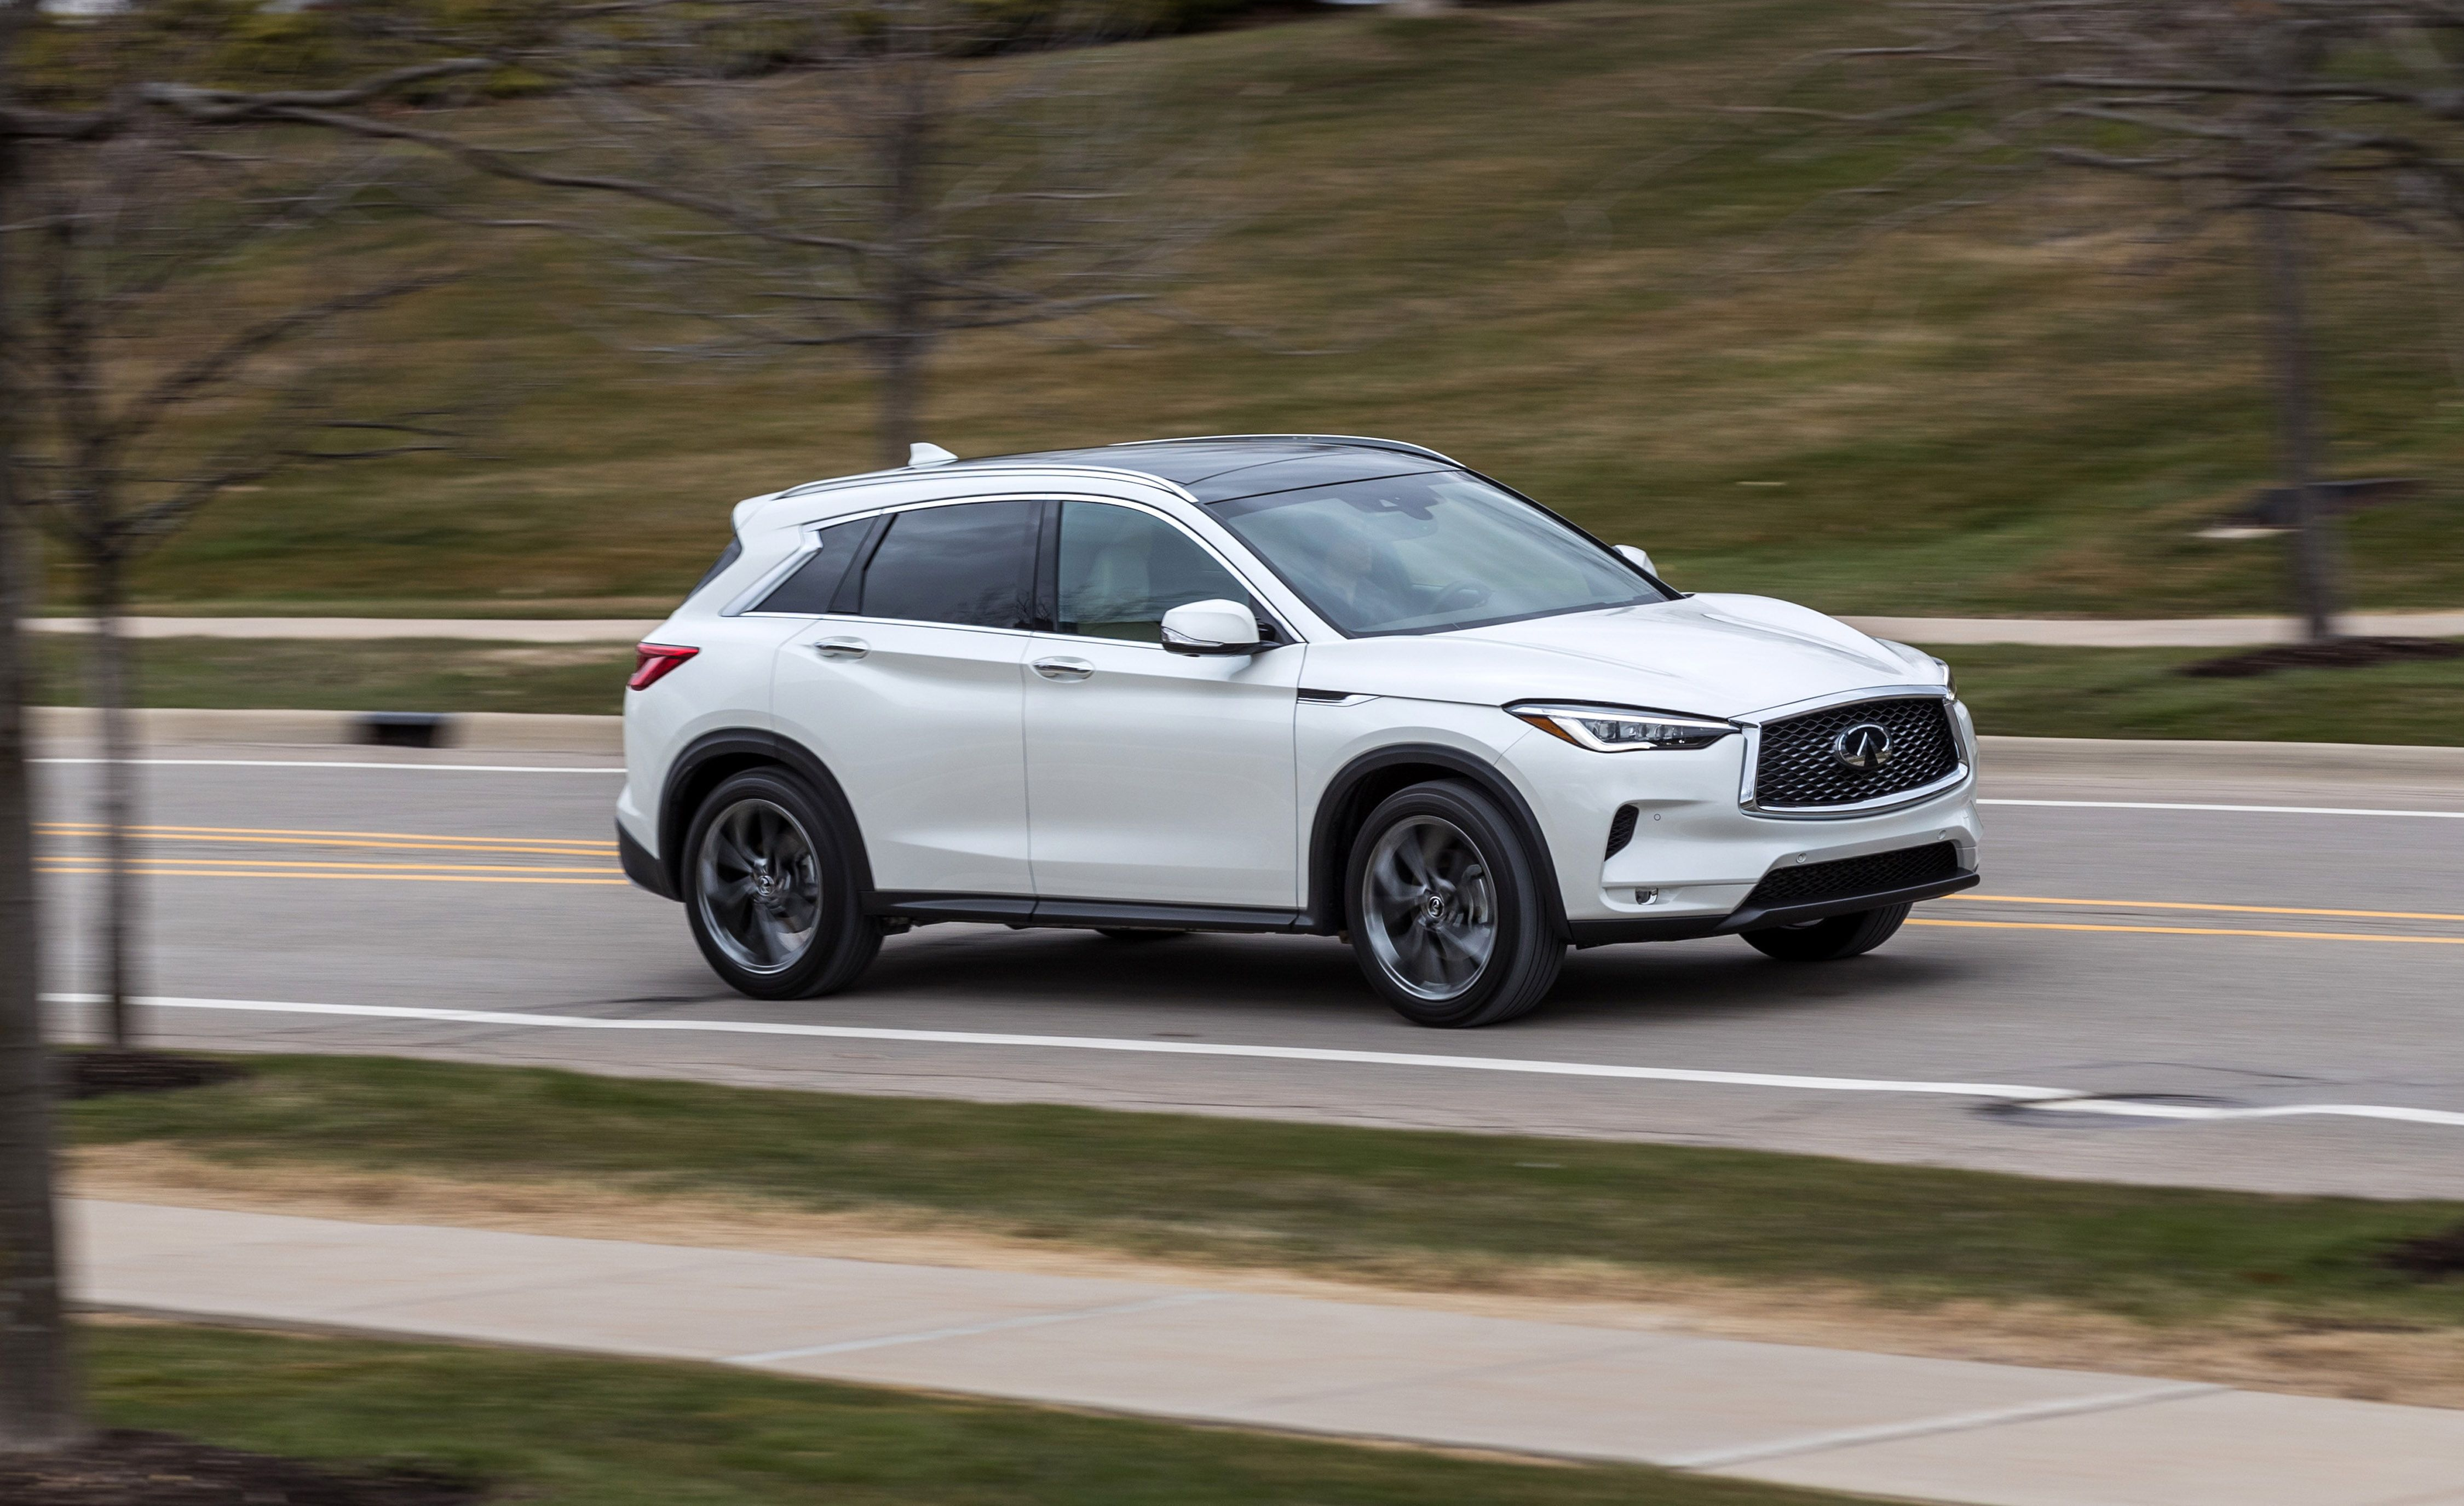 2019 Infiniti Qx50 Fails To Pay Off At The Pump